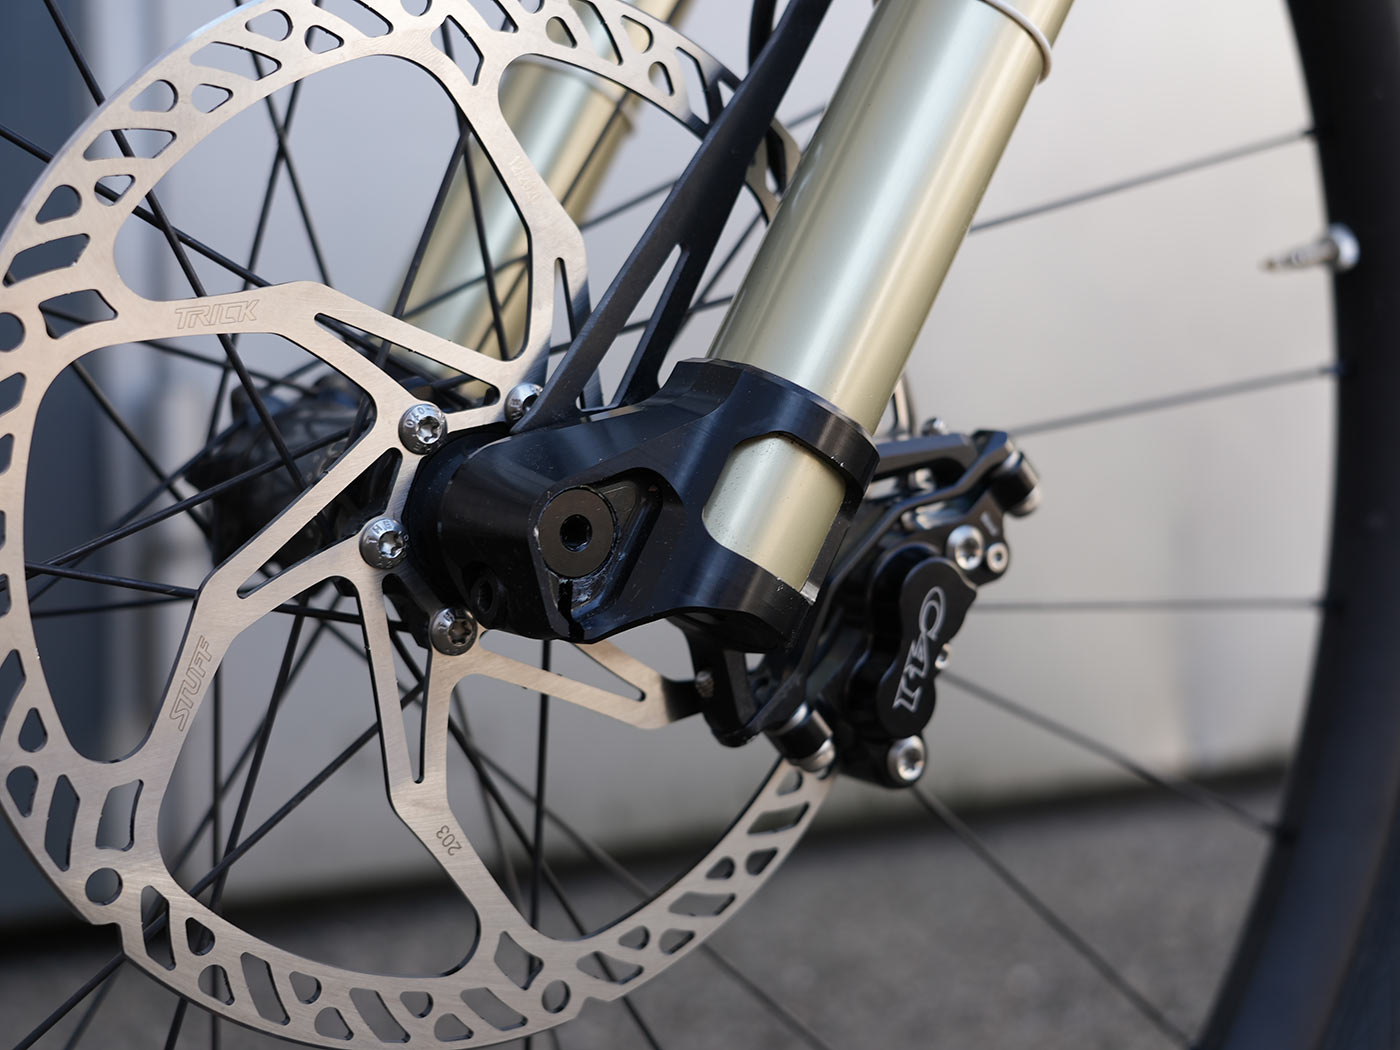 prototype intend inverted suspension fork with reverse offset